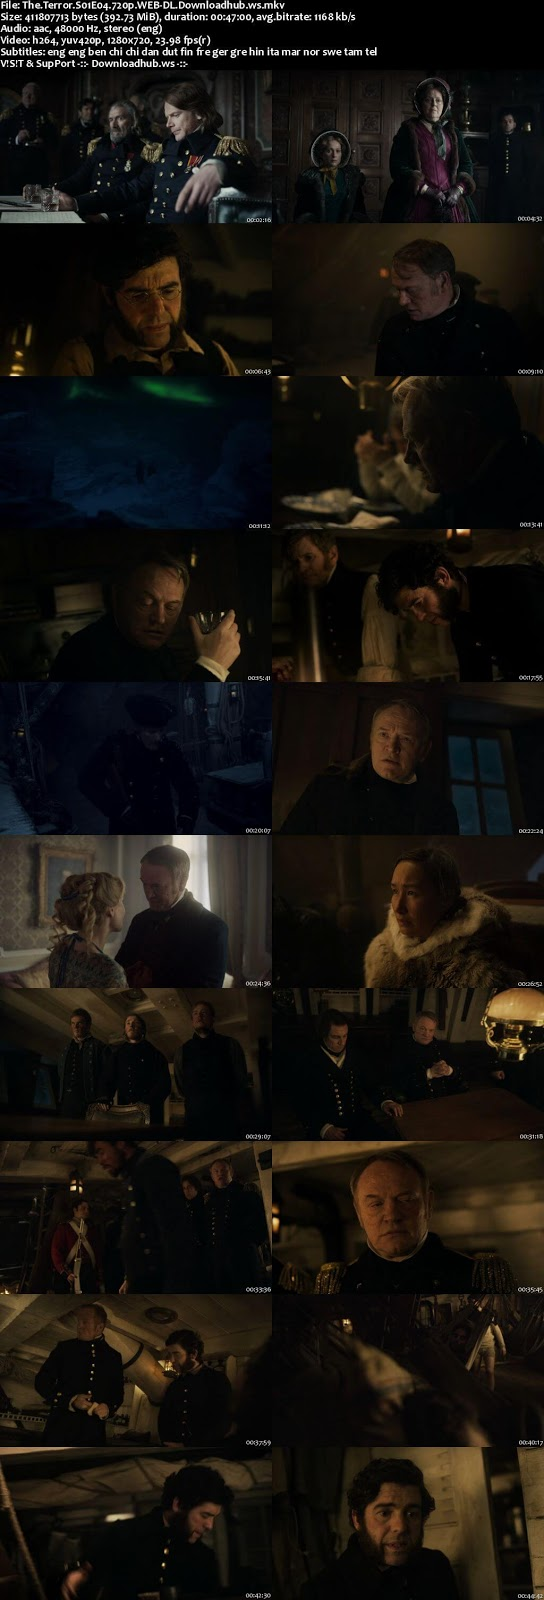 The Terror S01E04 390MB WEBRip 720p x264 MSubs